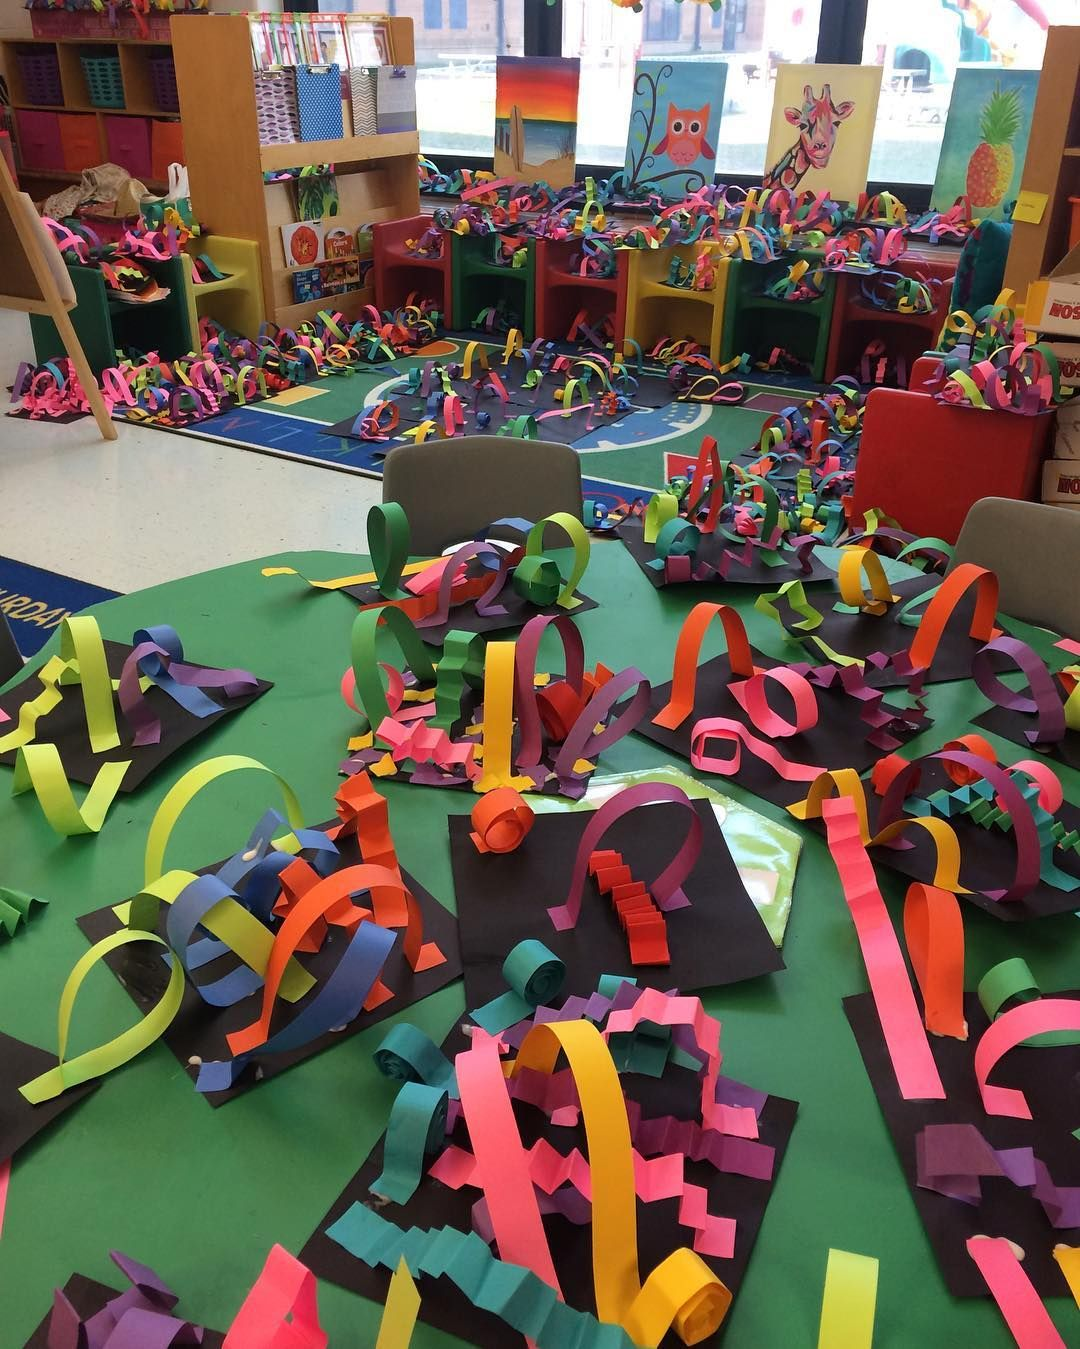 Line Sculptures Are Taking Over! #kindergartenart #kindergarten